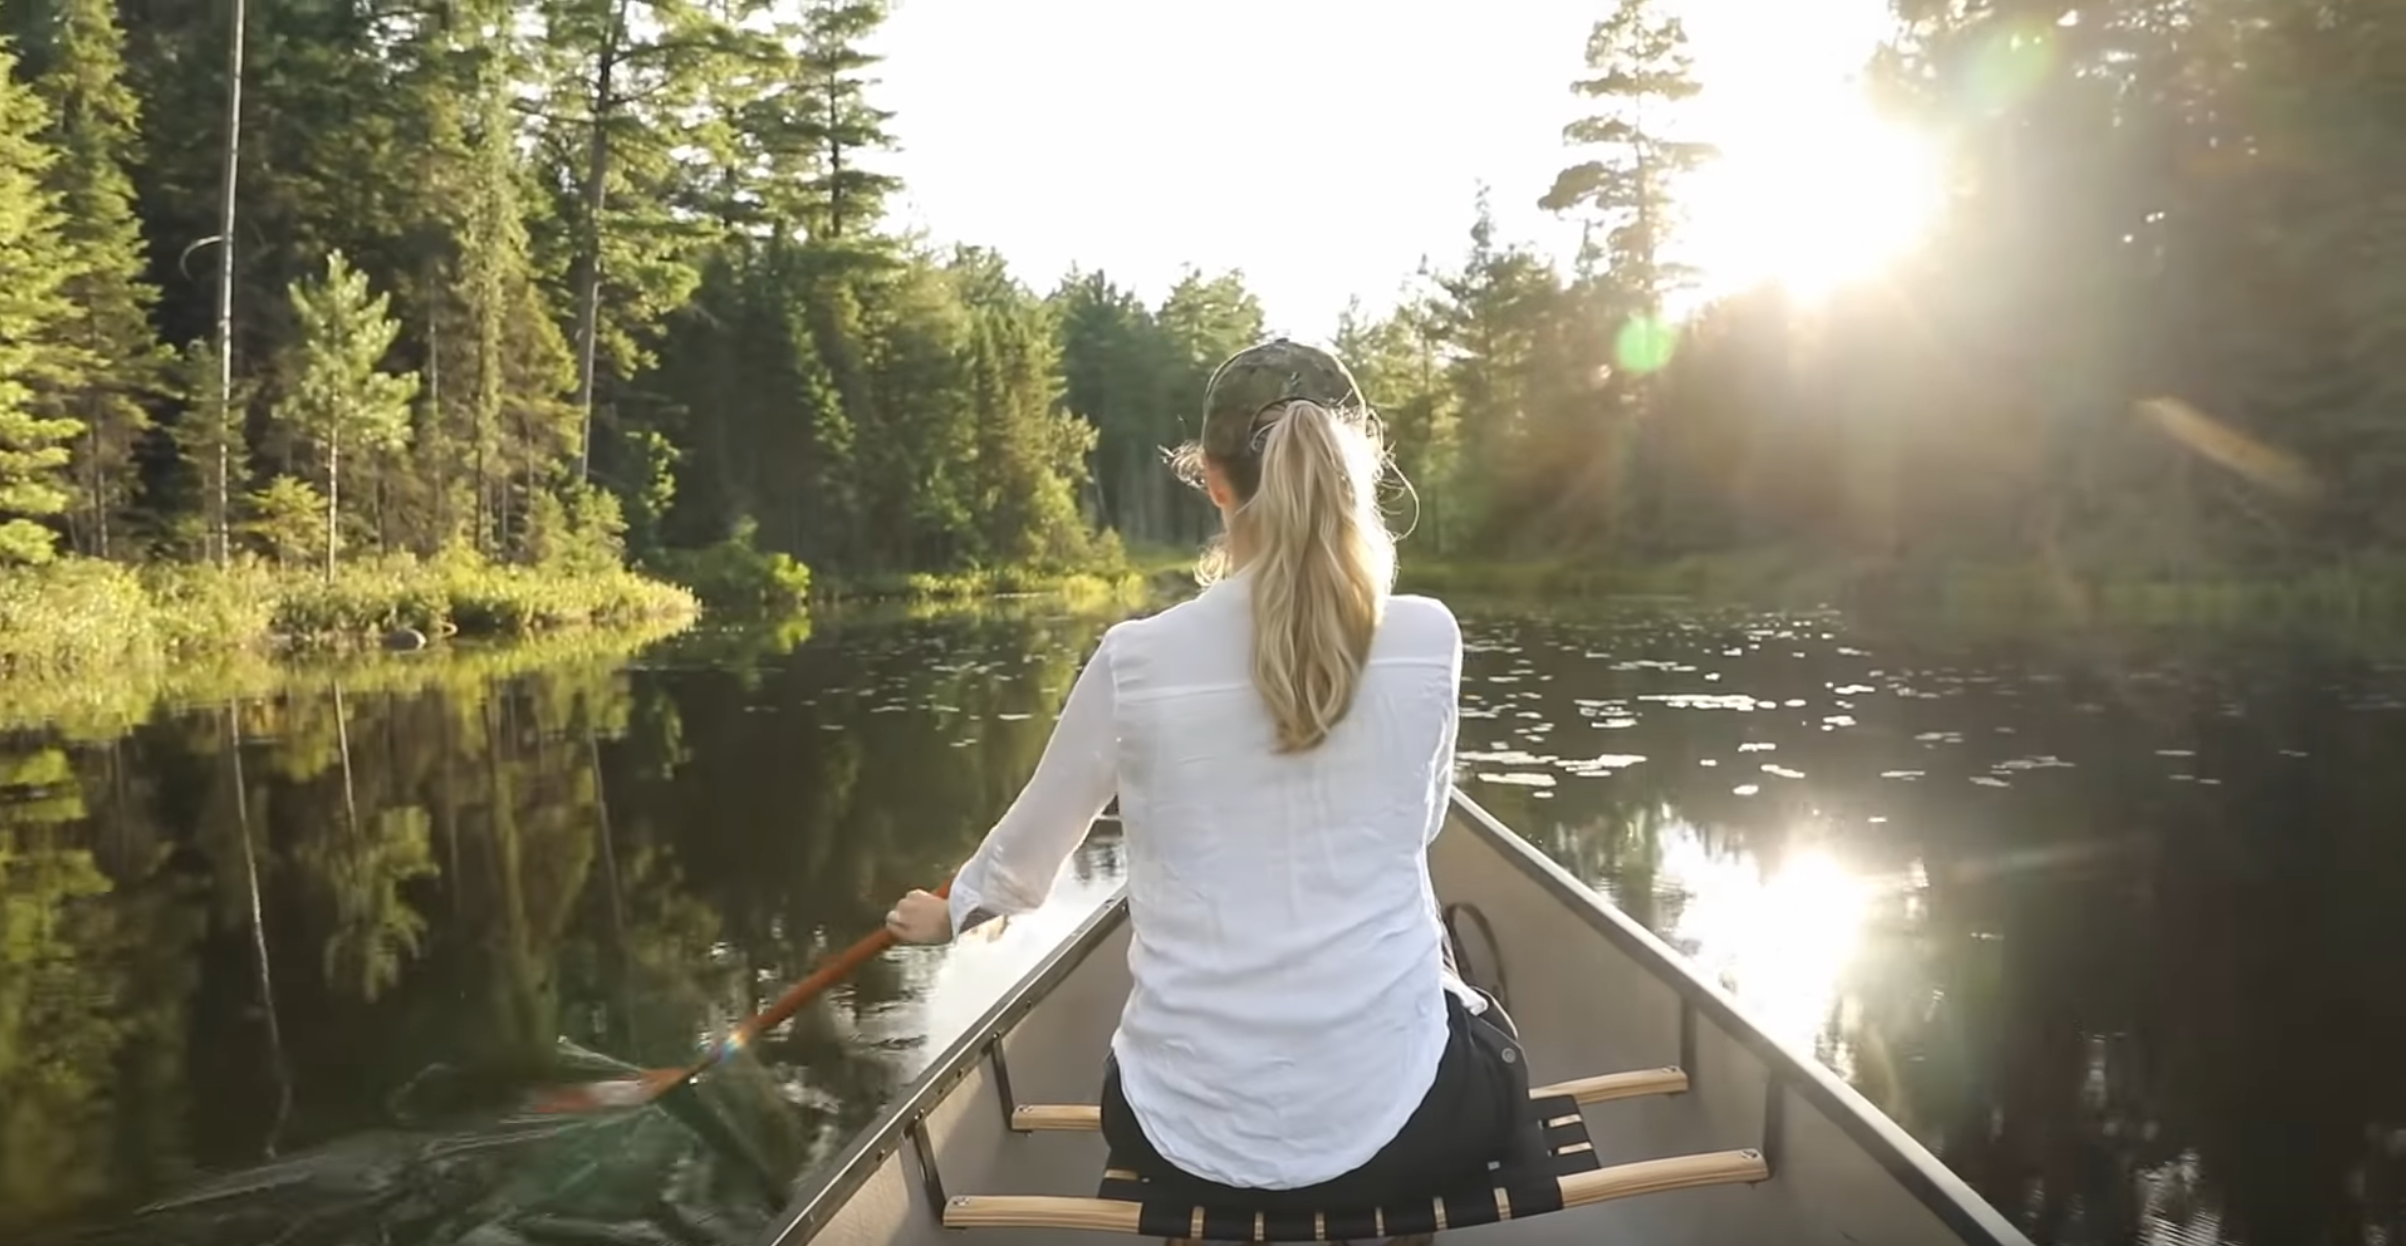 Caitlin paddles a canoe through a river at golden hour.  Screenshot from My Timber Life by Caitlin and Trustin Timber.